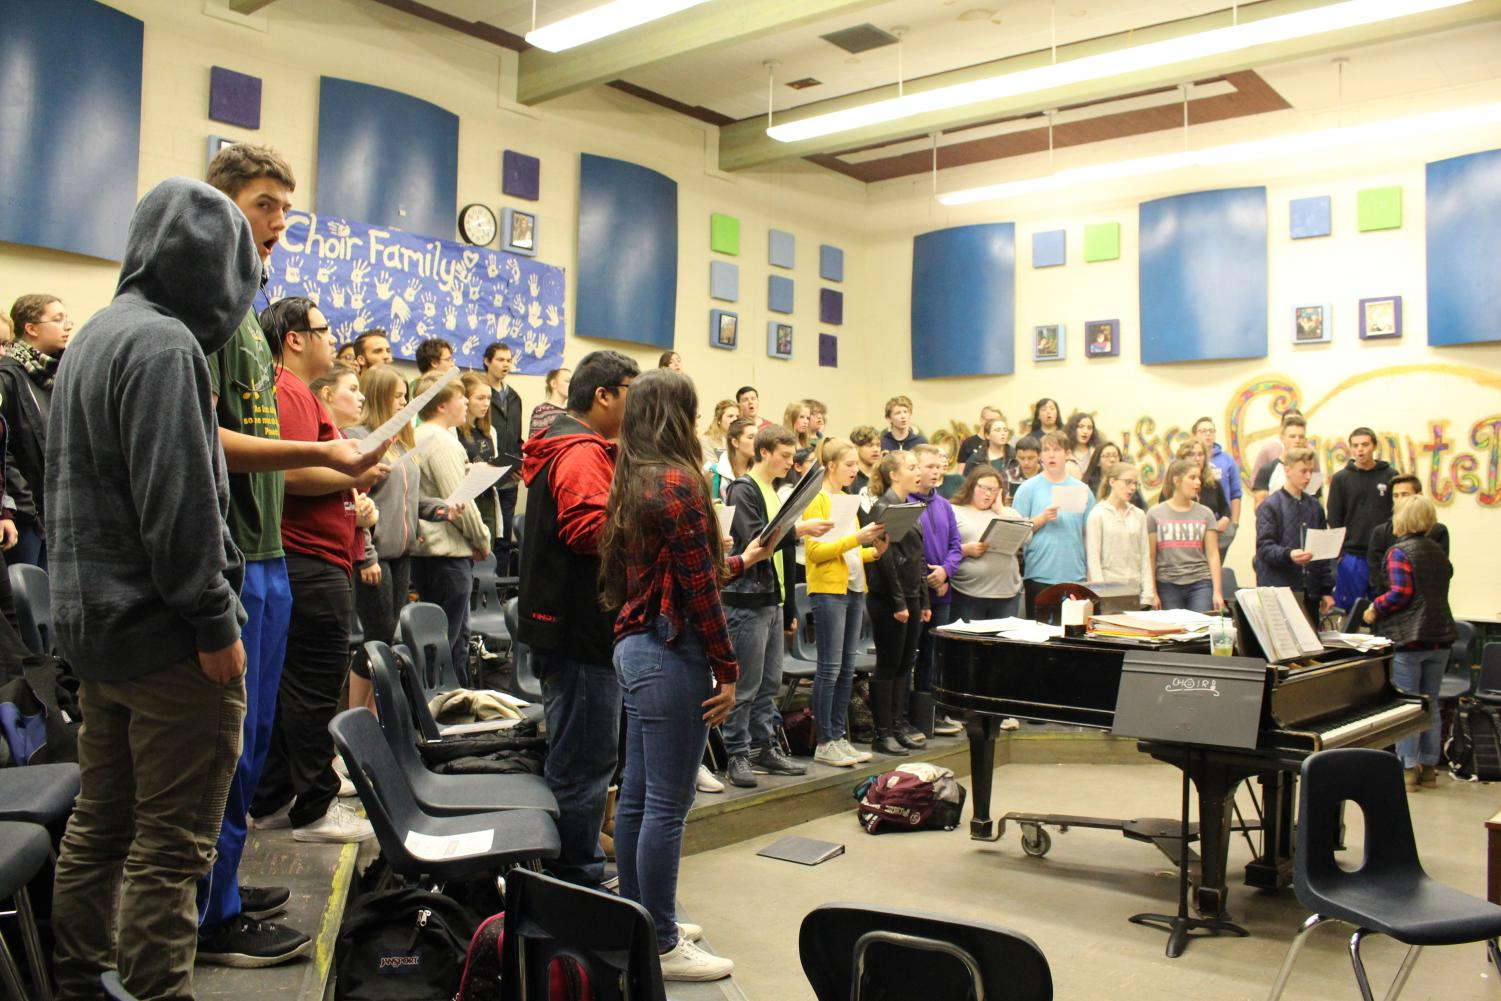 Choir students practicing during class